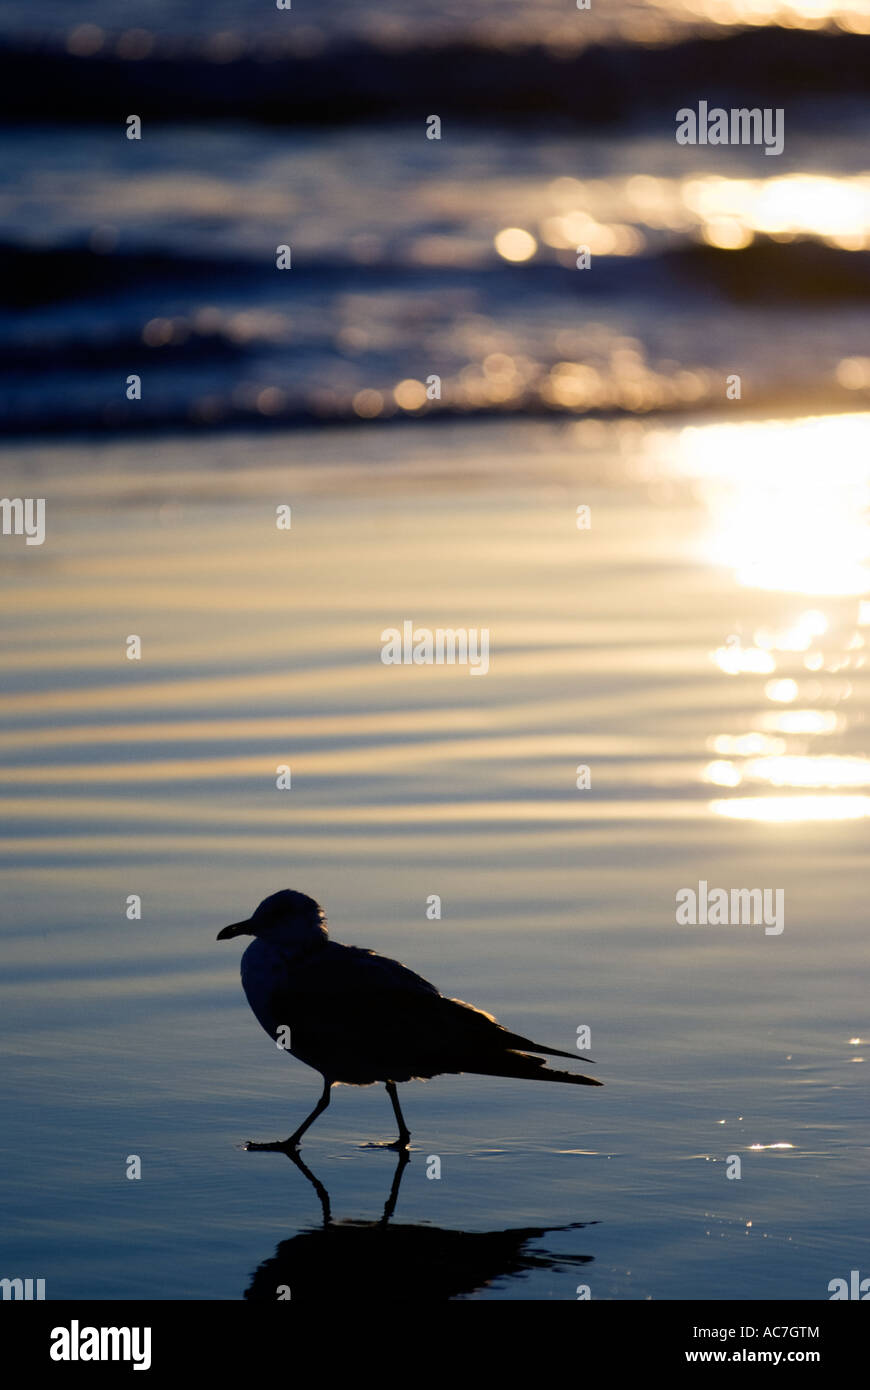 A single seagull paddling at the water's edge - Stock Image